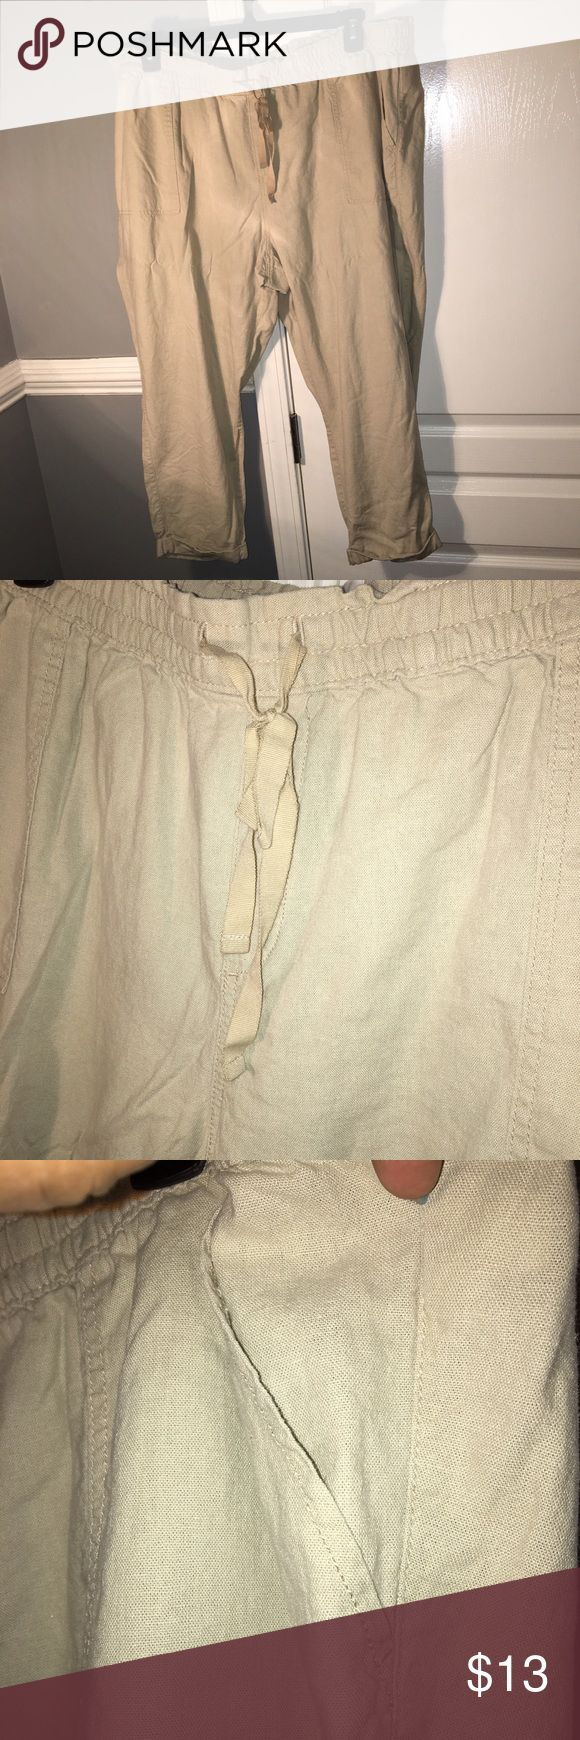 """Plus size length ankle pants Khaki linen pants. Elastic waist with functional drawstring. Side and back pockets. Fixed rolled hem. Inseam measures approximately 24"""". Size XXL. Old Navy. Old Navy Pants Ankle & Cropped"""